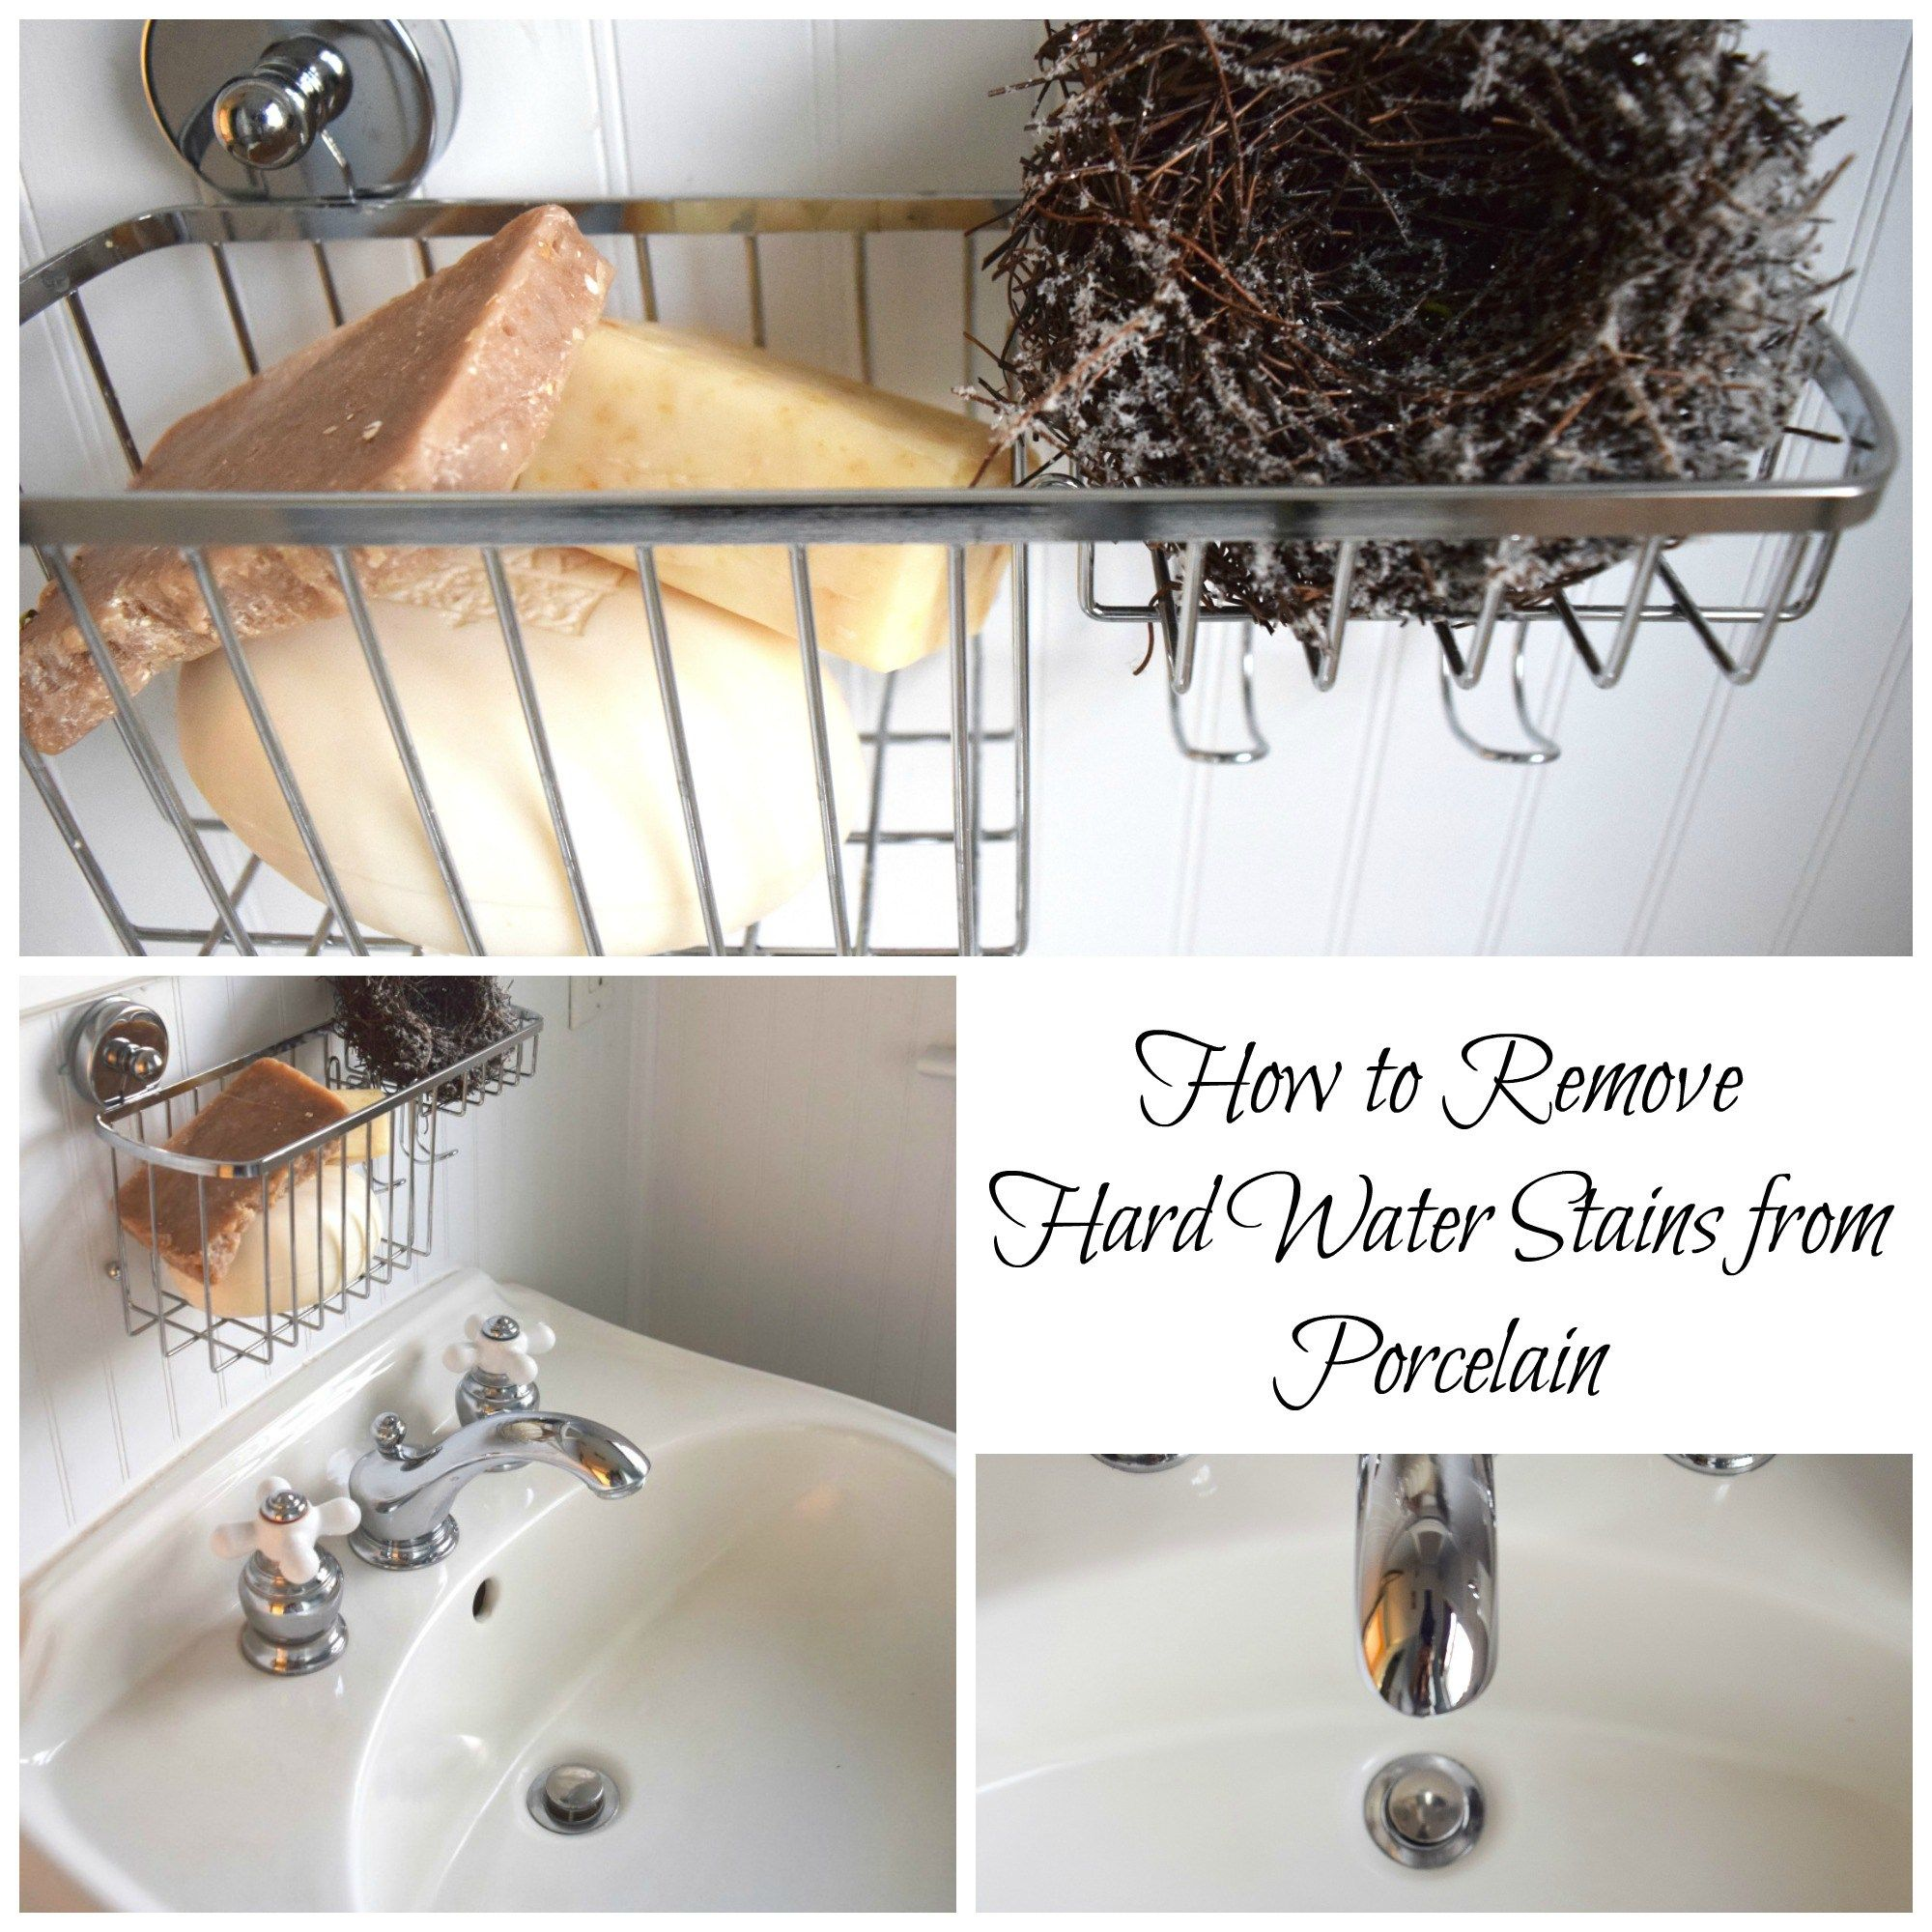 How To Remove Hard Water Stains From Porcelain Cleaning Tips - Remove stains from bathroom sink